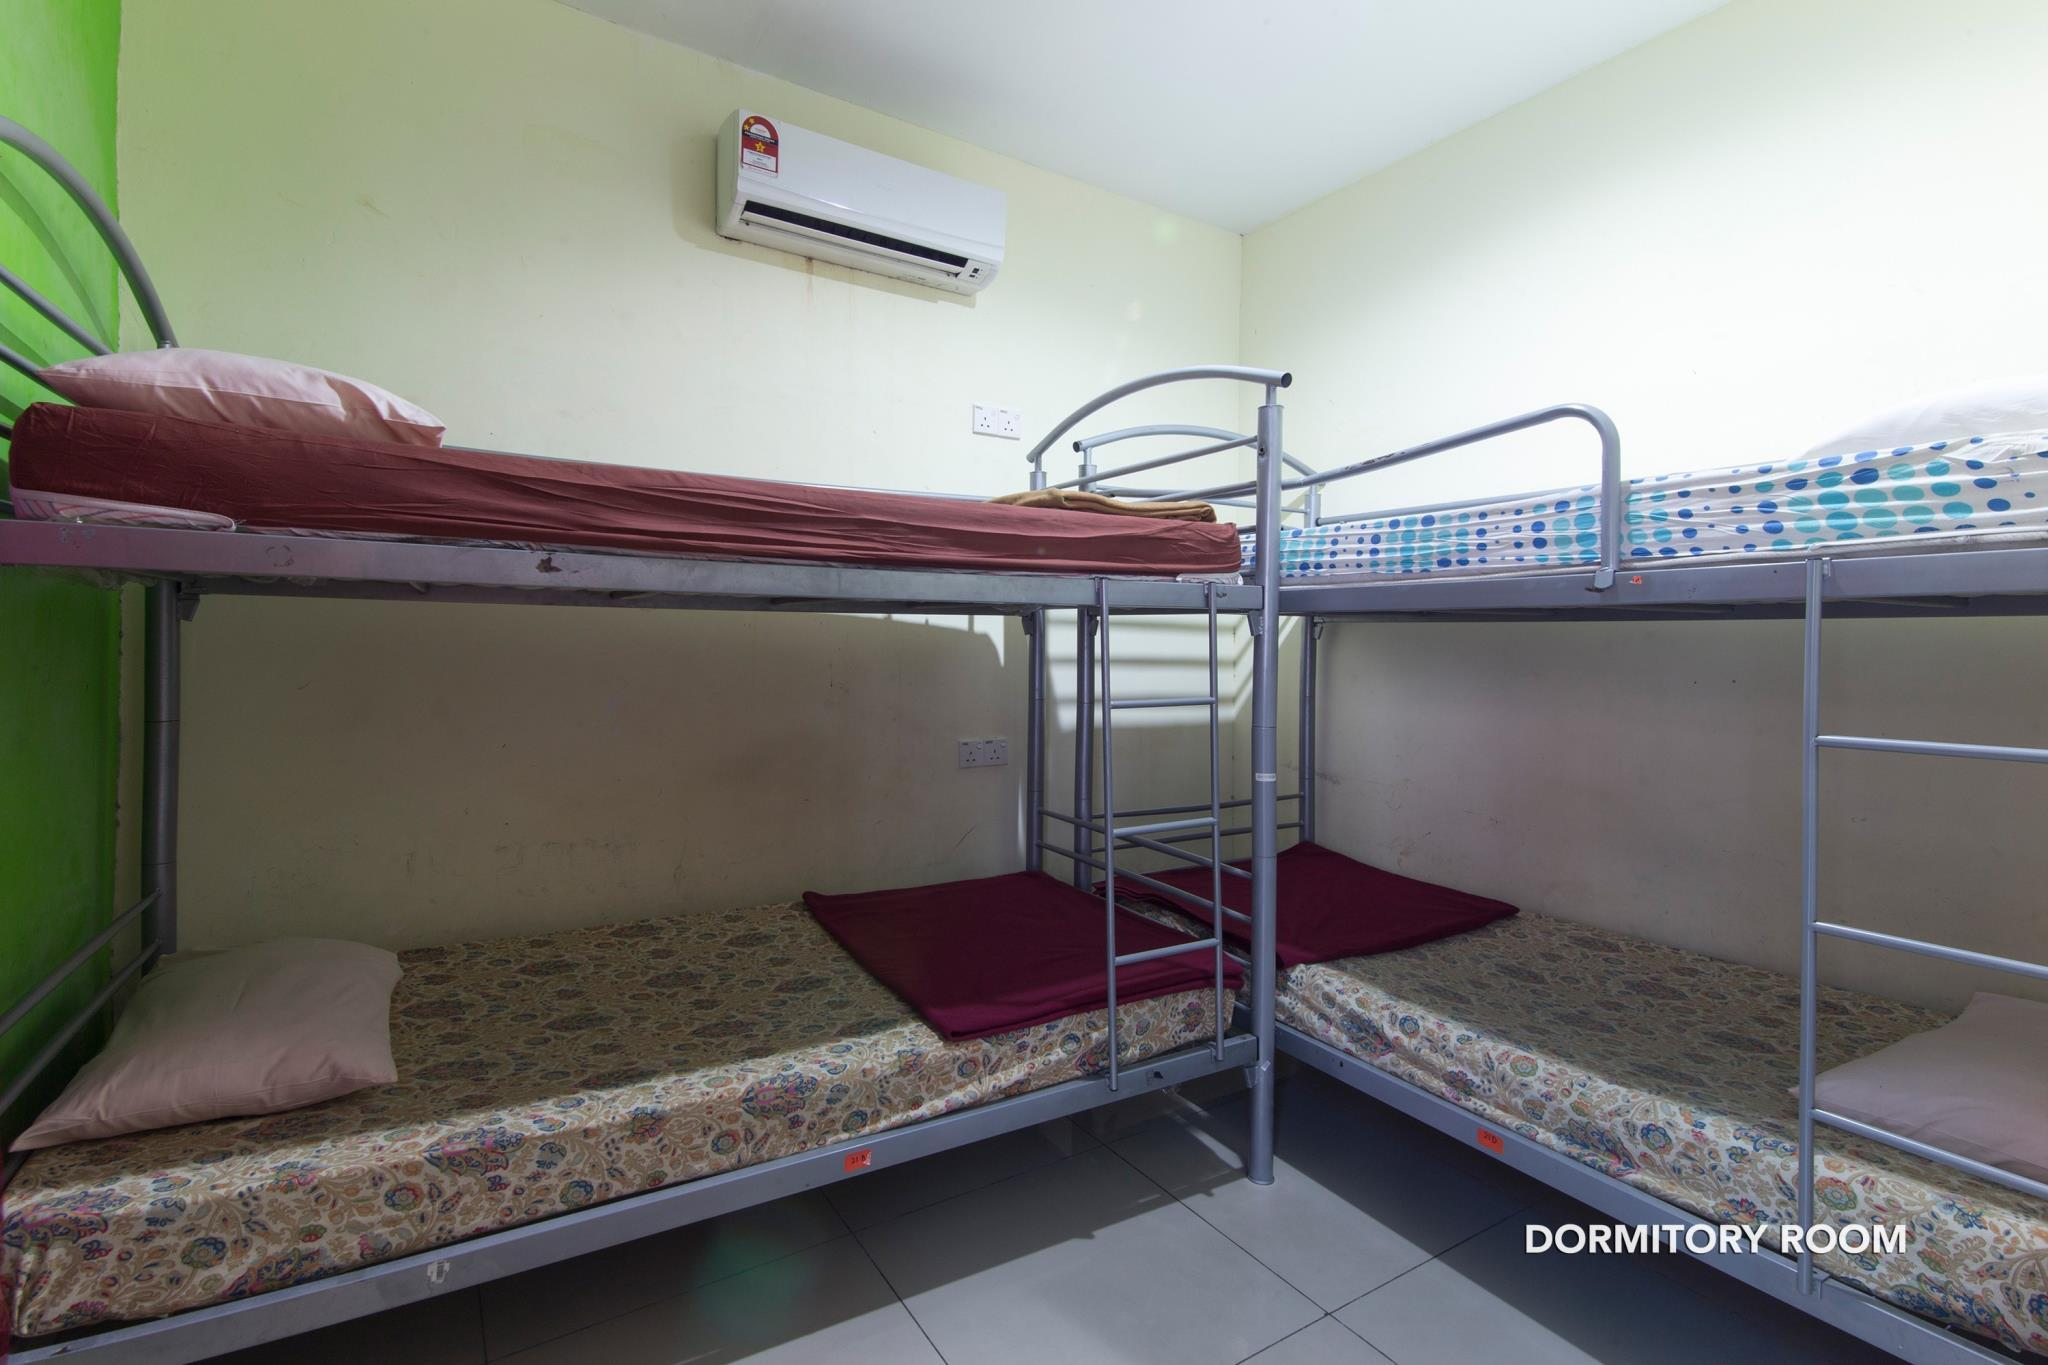 1 Person in Dormitory - Mixed